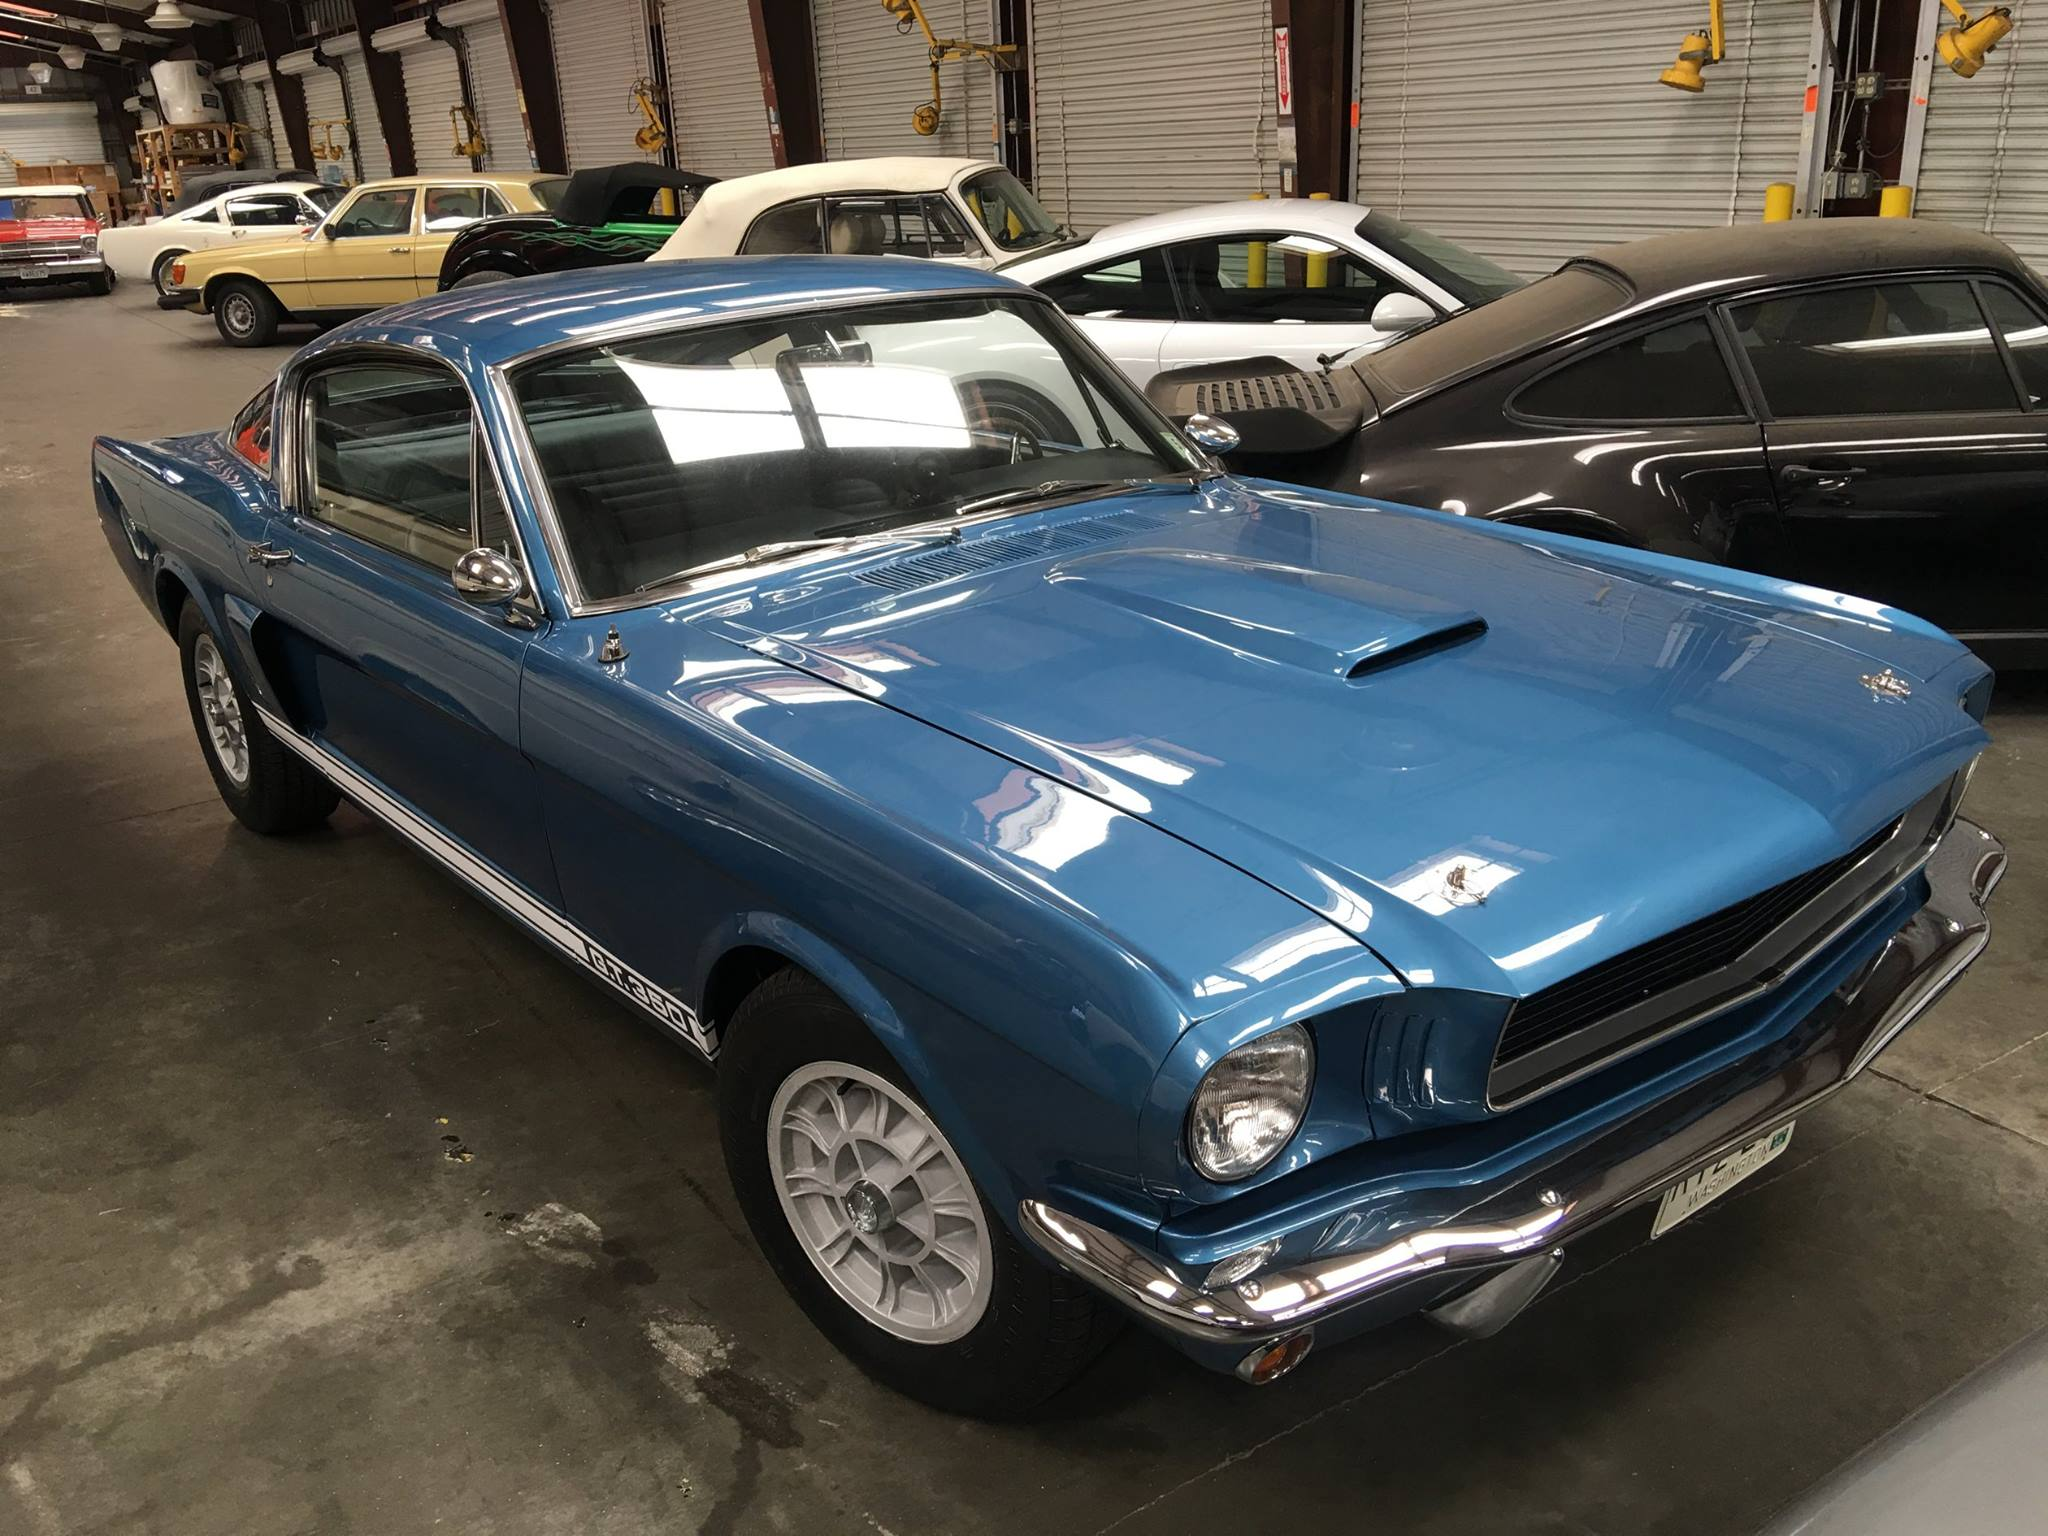 Mustang shipping from the USA to Africa